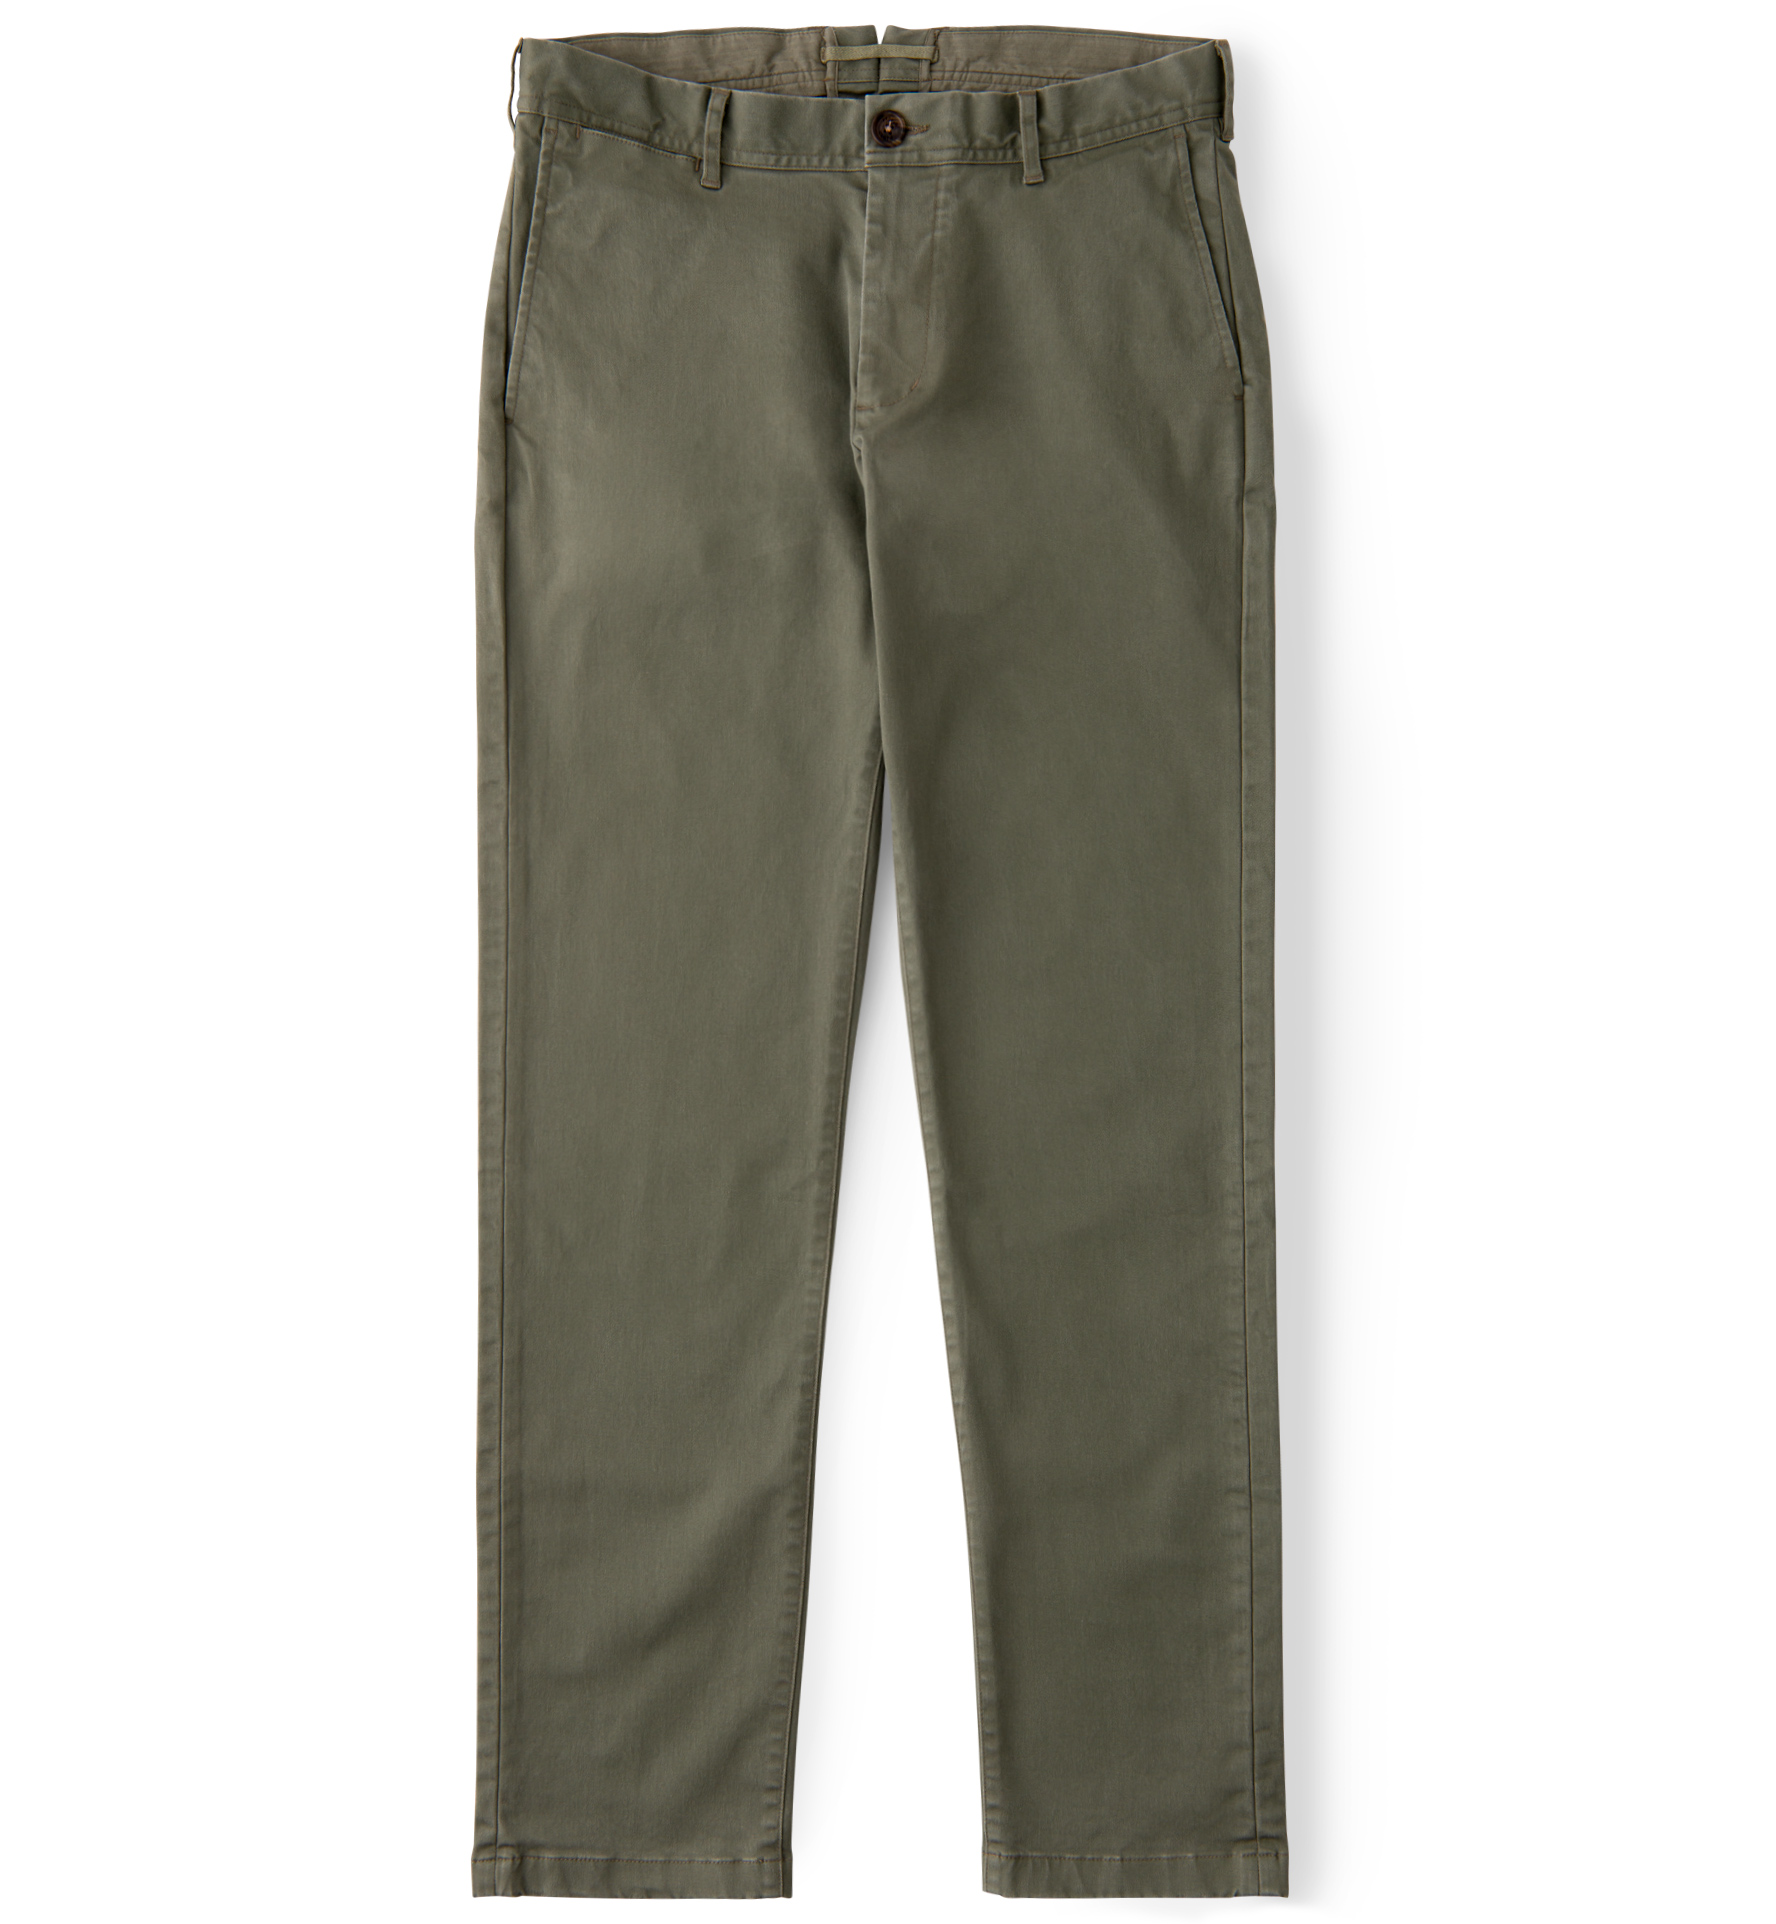 Zoom Image of Bowery Sage Stretch Heavy Cotton Chino